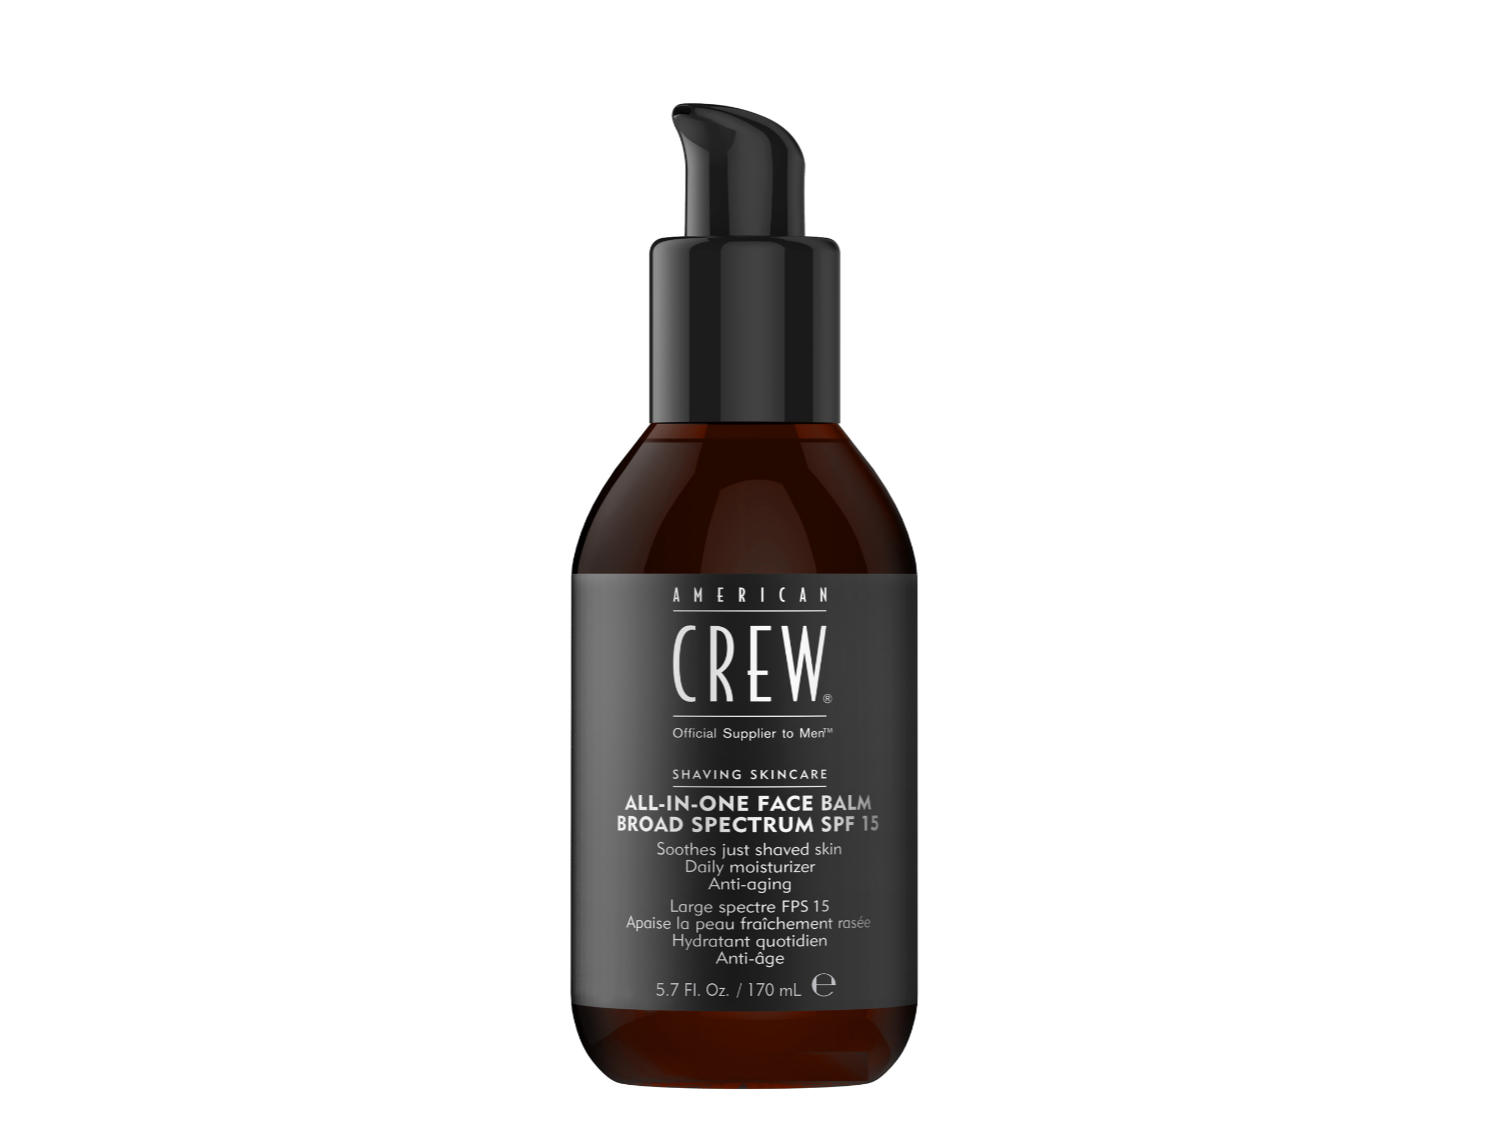 Arma Beauty - American Crew - All-in-One Face Balm (SPF 15)